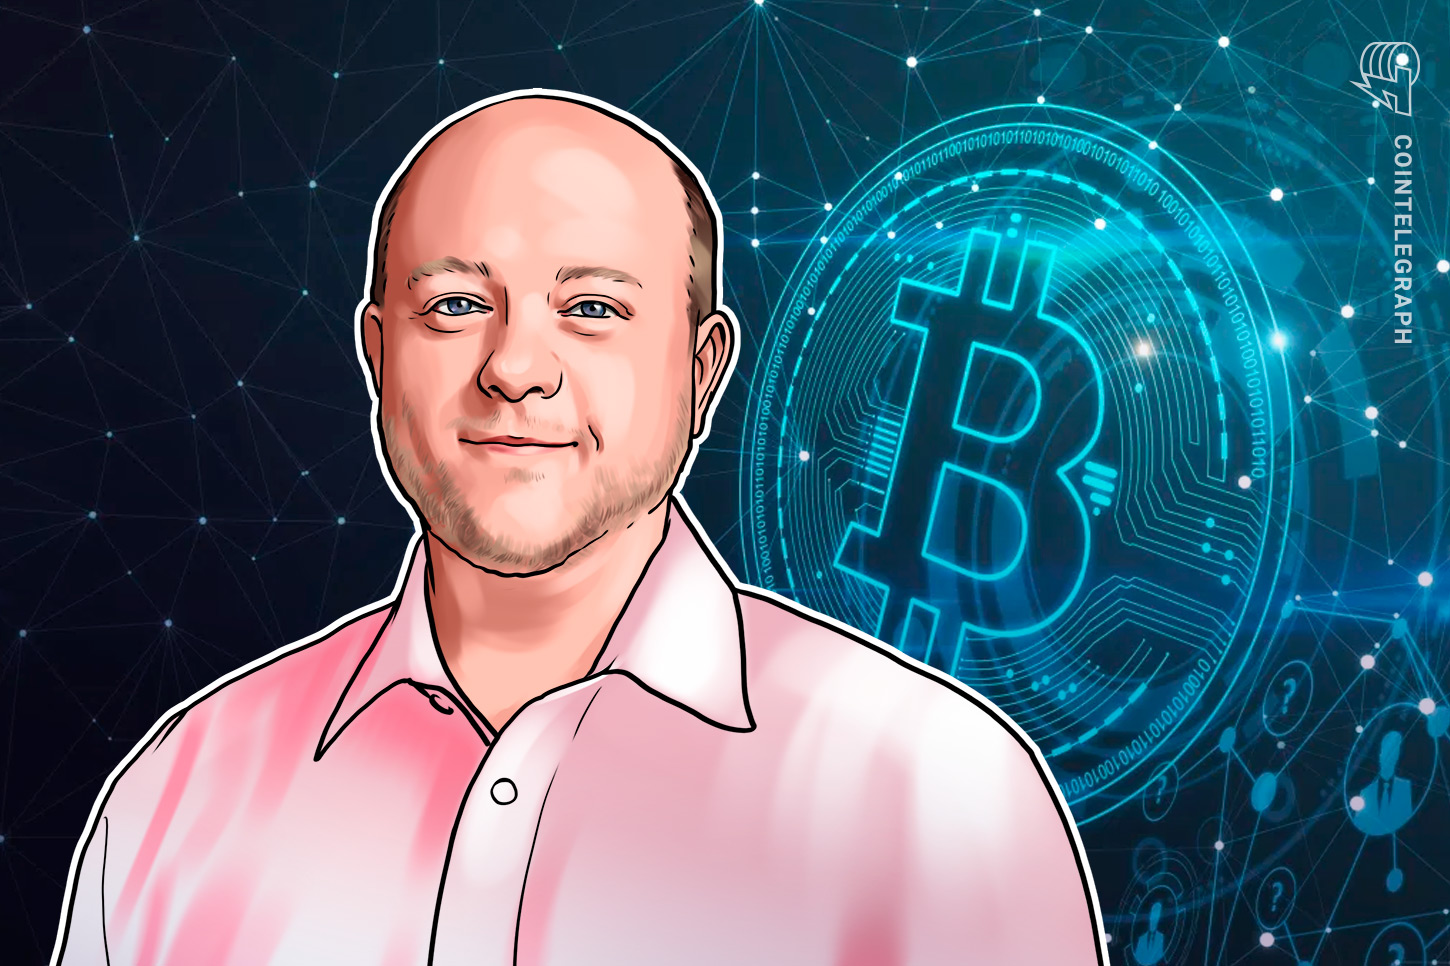 Circle CEO Jeremy Allaire seems to already be using PayPal to buy Bitcoin